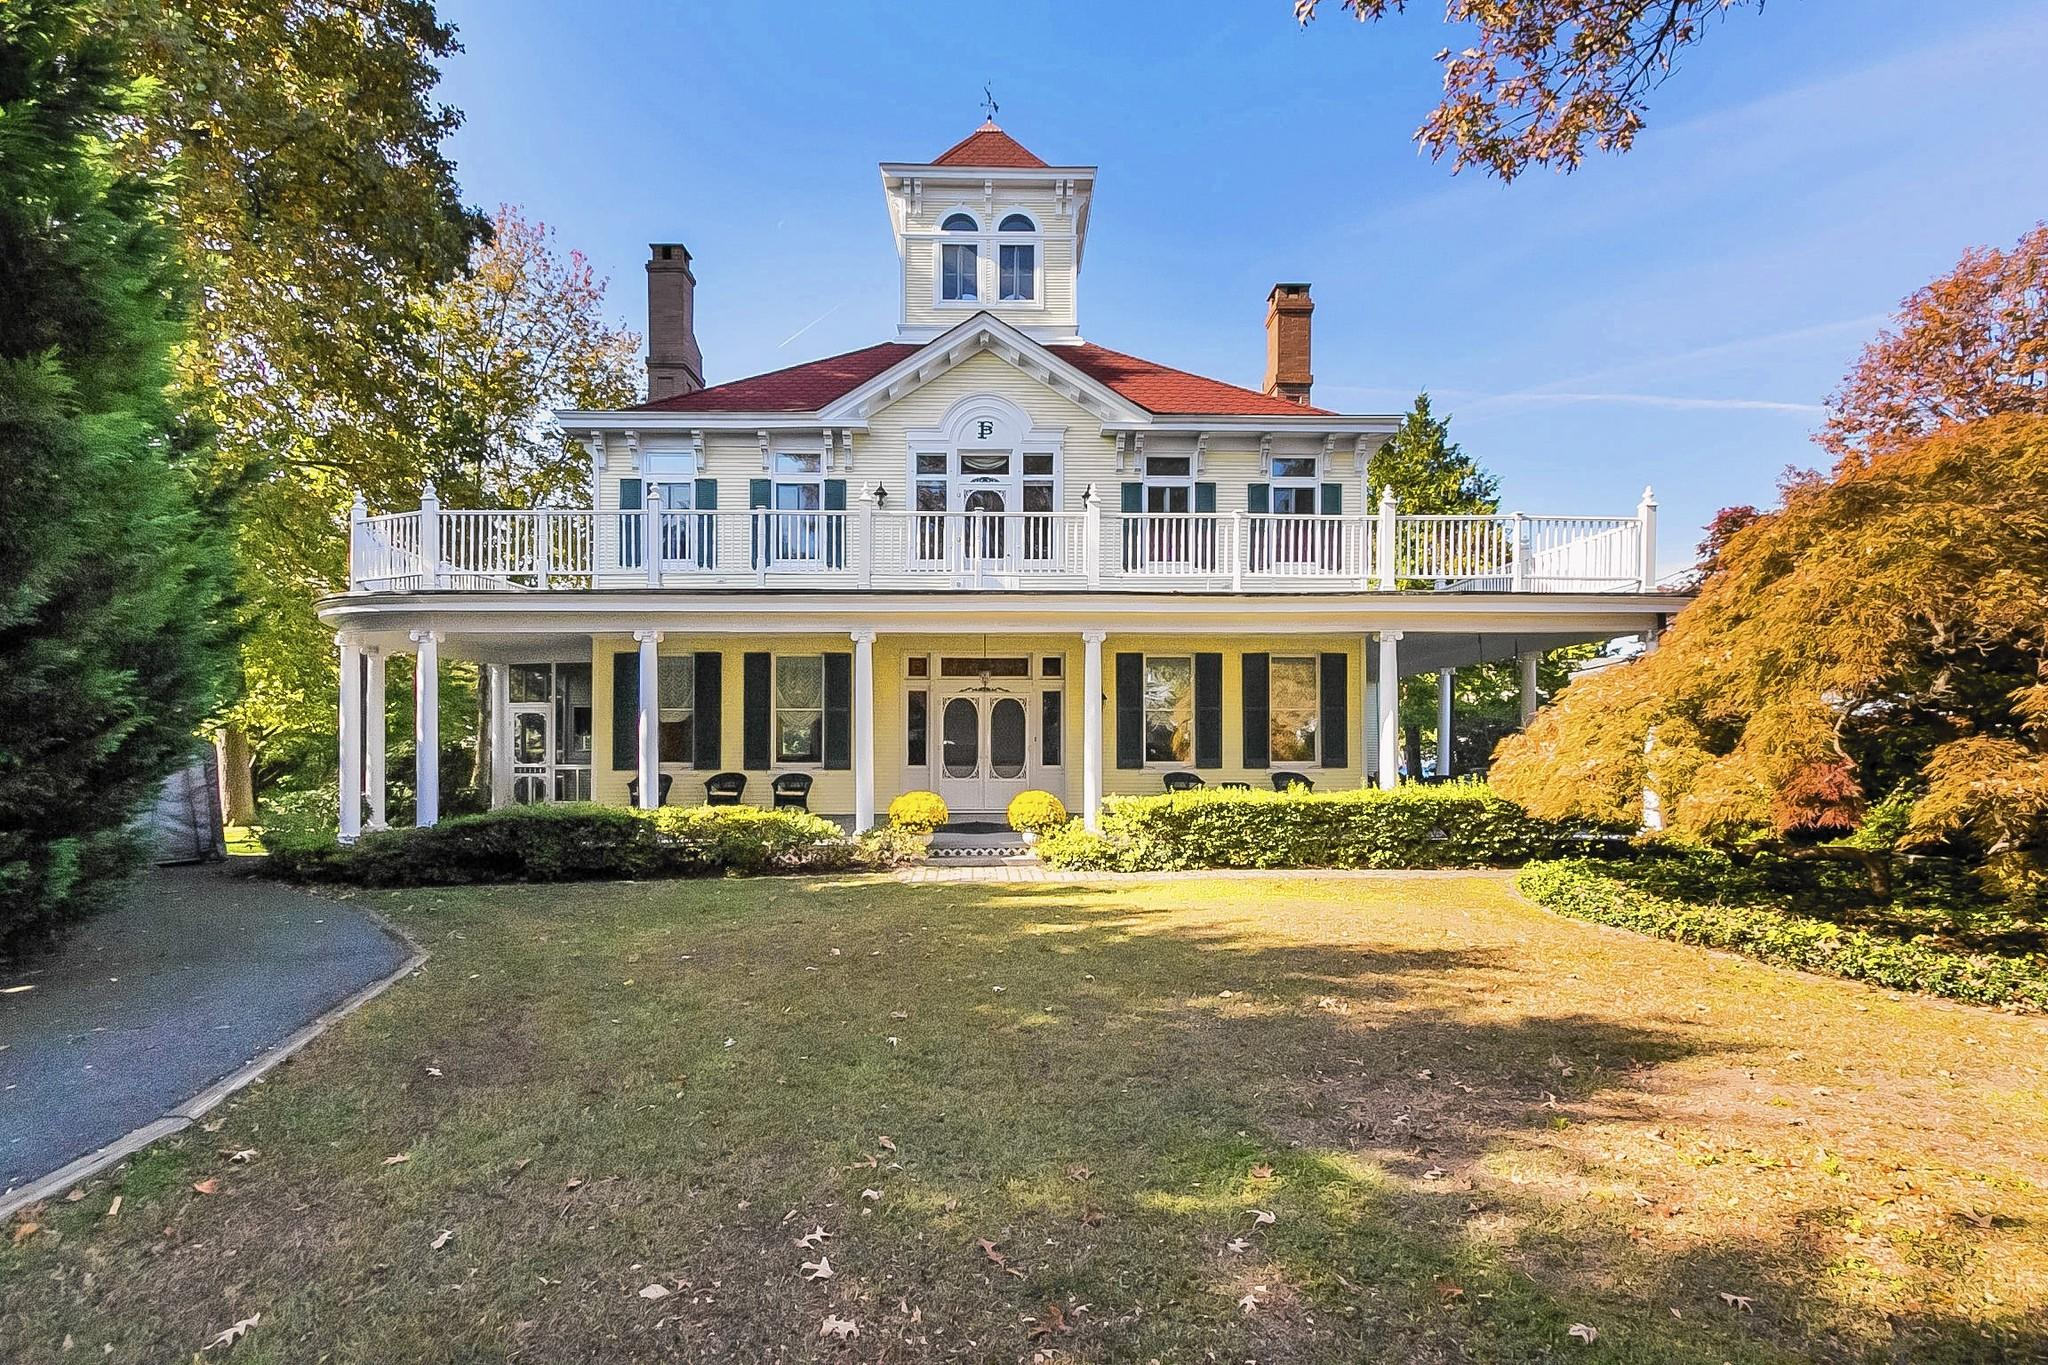 This mansion was built in 1909 by Agnes and Frederick Bauernschmidt, who owned a brewing company in Baltimore, as their summer home just blocks from the Middle River.